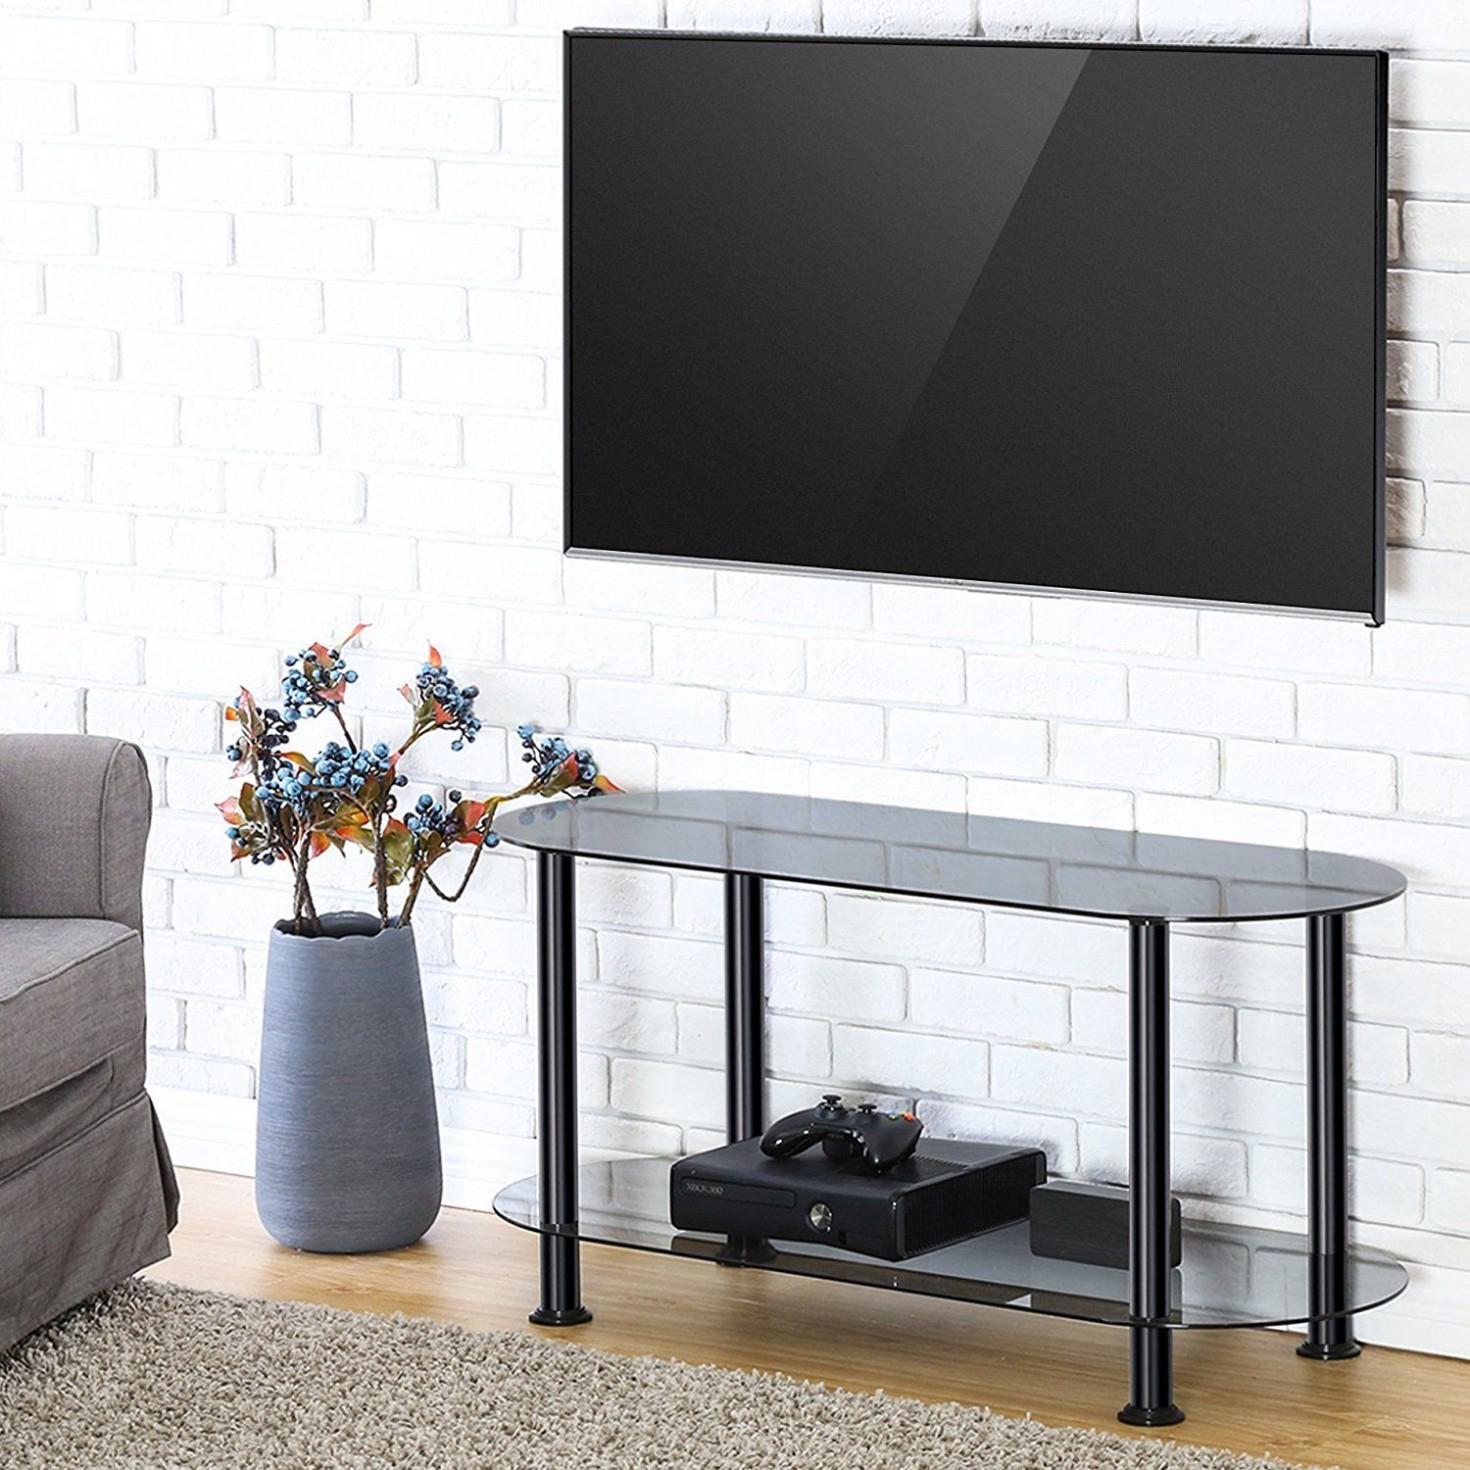 New Classic Grey Tempered Glass Tv Stand Suit For Up To 46 Inch Lcd Regarding Sinclair Grey 74 Inch Tv Stands (Photo 14 of 30)